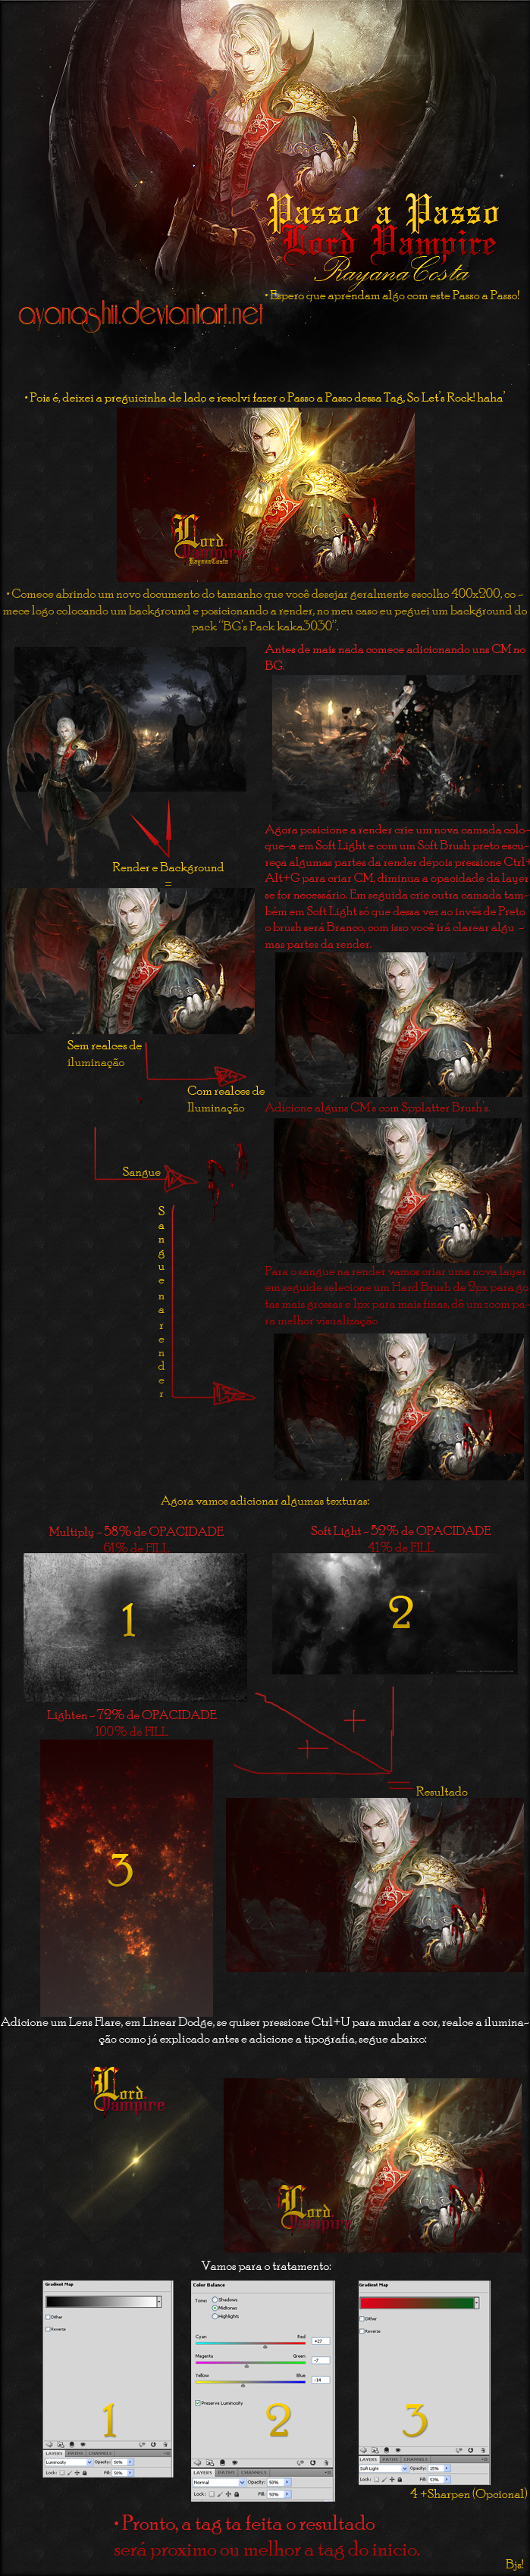 Tag - Lord Vampire Passo_a_passo_lord_vampire_by_ayanashii-d5mriv5